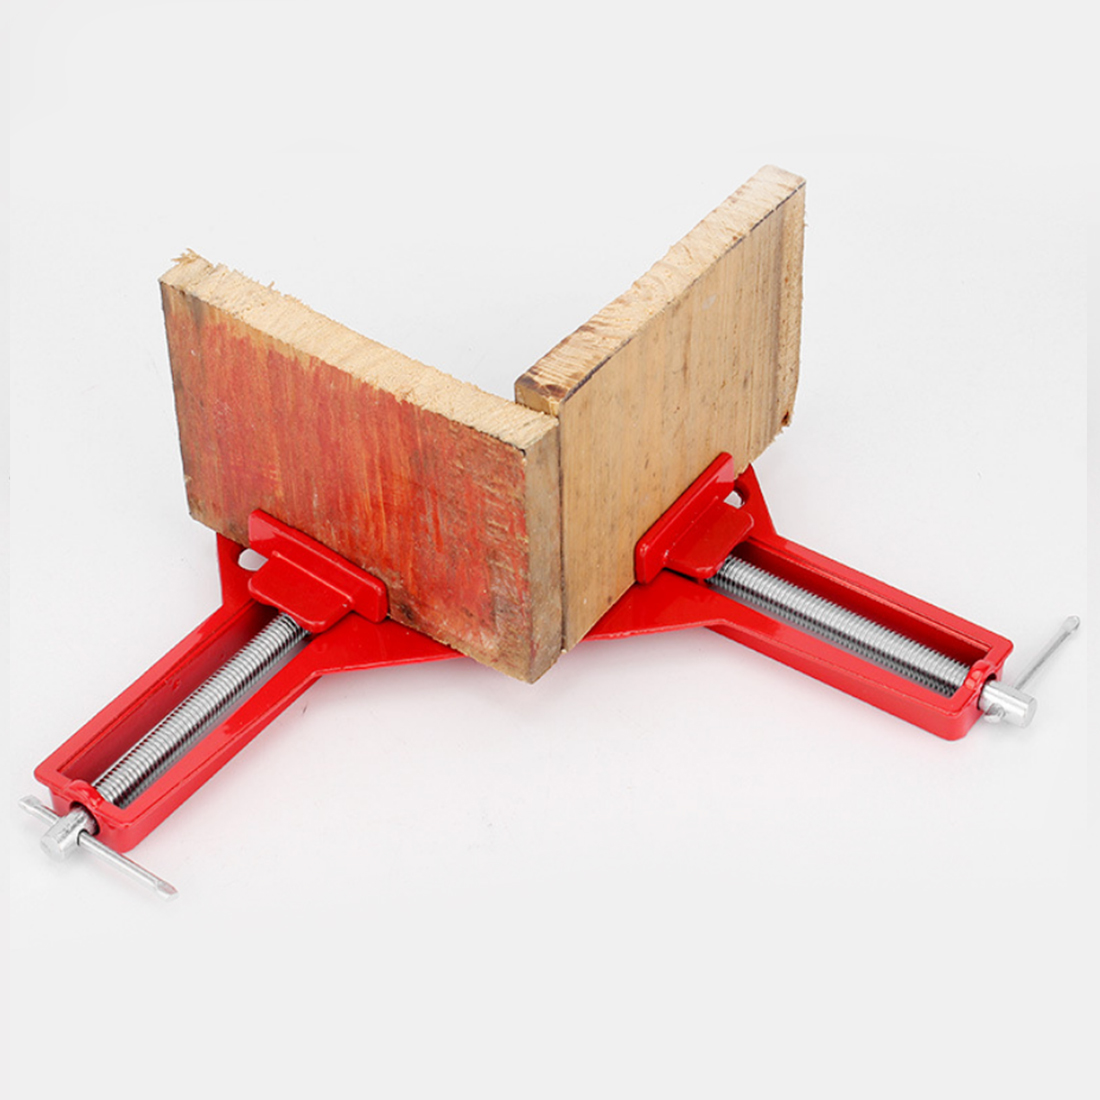 90 Degree Right Angle Clamp 100MM Mitre Clamps Corner Clamp Picture Holder Woodwork 4Inch Right Angle Clamp Woodworking Tool цена